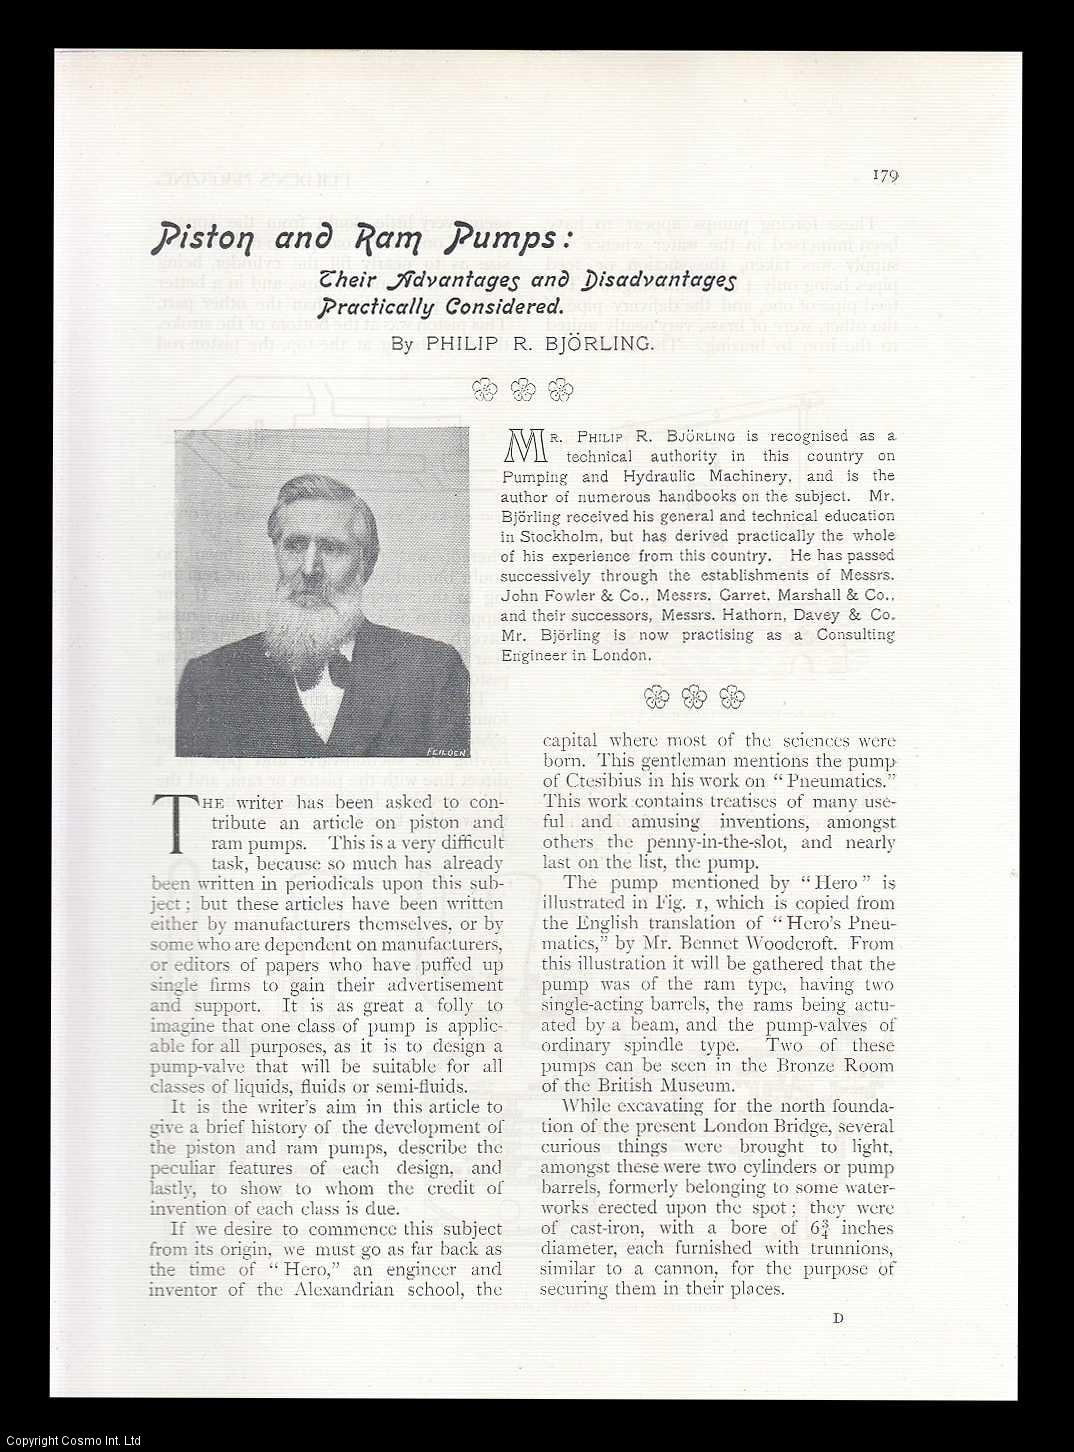 BJORLING, PHILIP R. - Piston and Ram Pumps: Their Advantages and Disadvantages Practically Considered. A rare original article from Feilden's Magazine. The World's Record Of Industrial Progress., 1899.